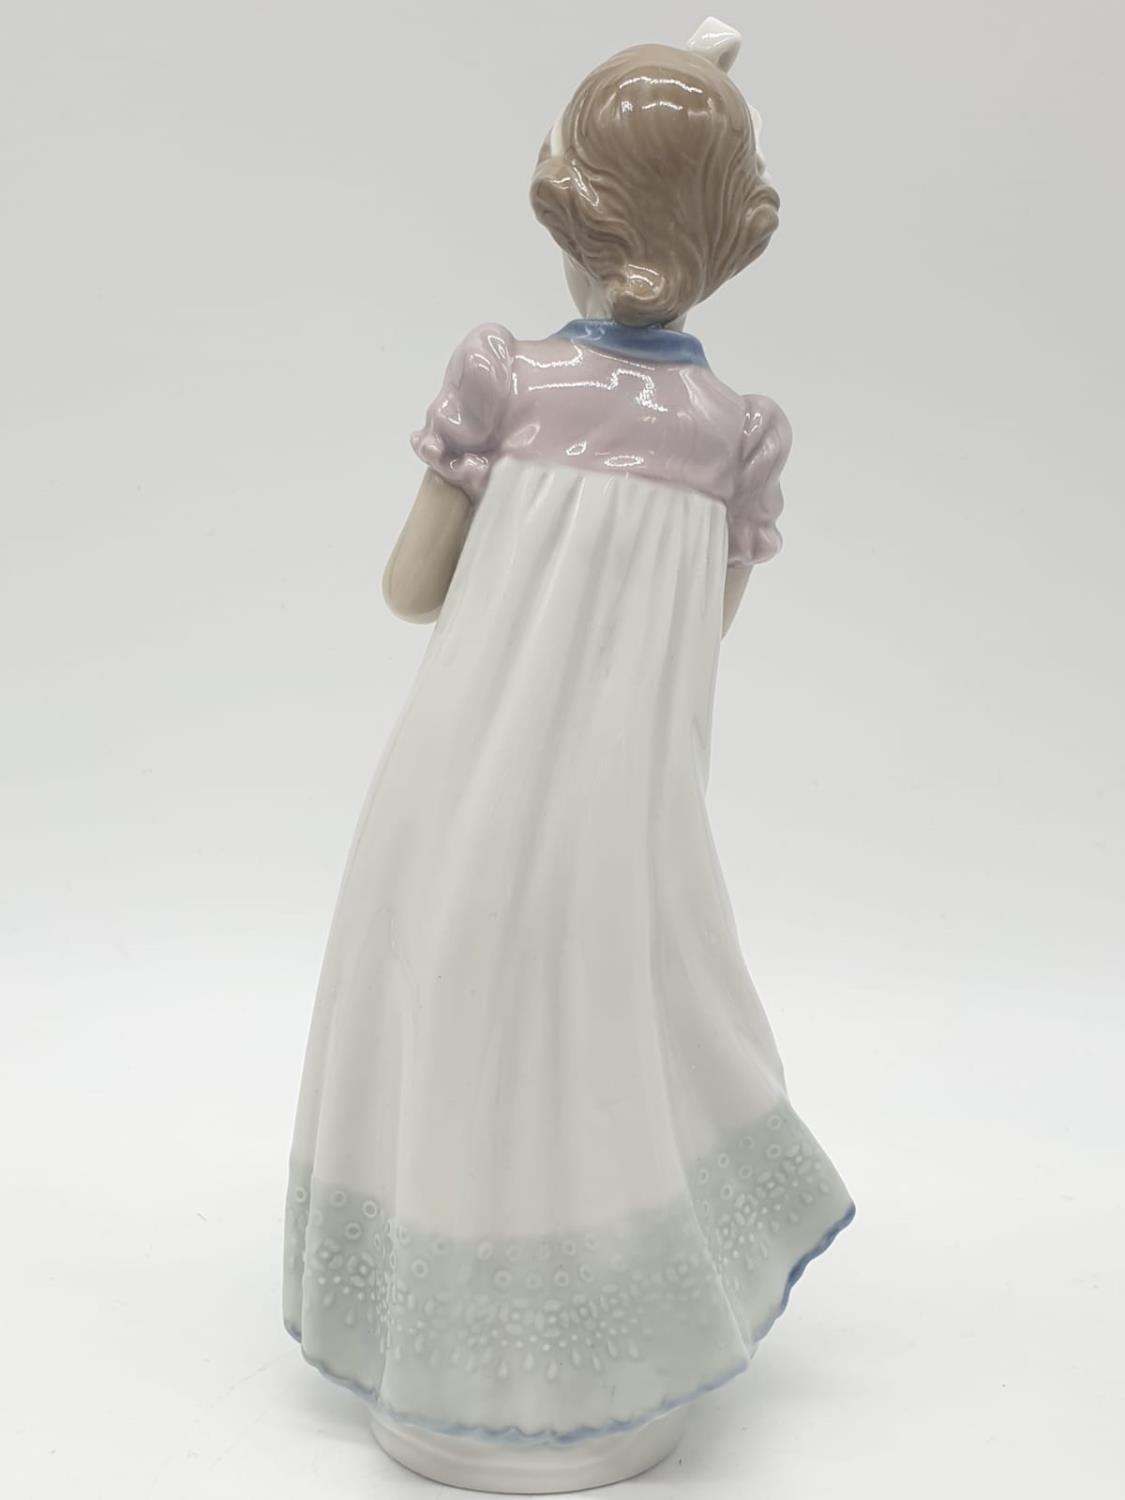 Lladro girl holding a cake on a plate. 20cm tall. - Image 4 of 6